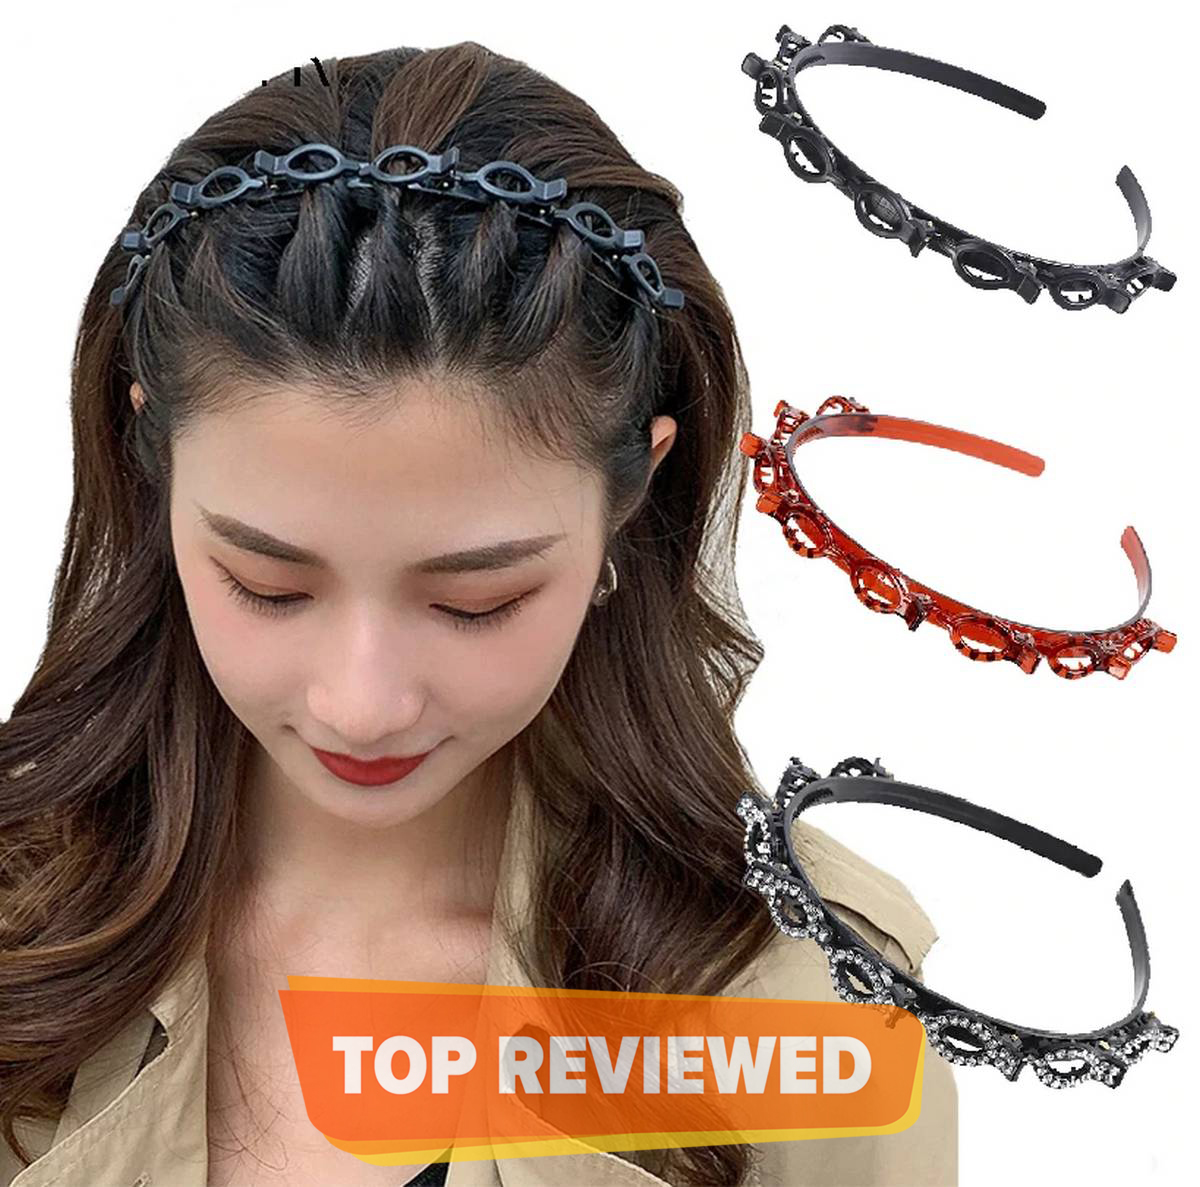 Non-Slip Alice Hairband Women Hair Bands Hoop Claws Clips Double Bangs Hairstyle Hairpin Hair Accessories